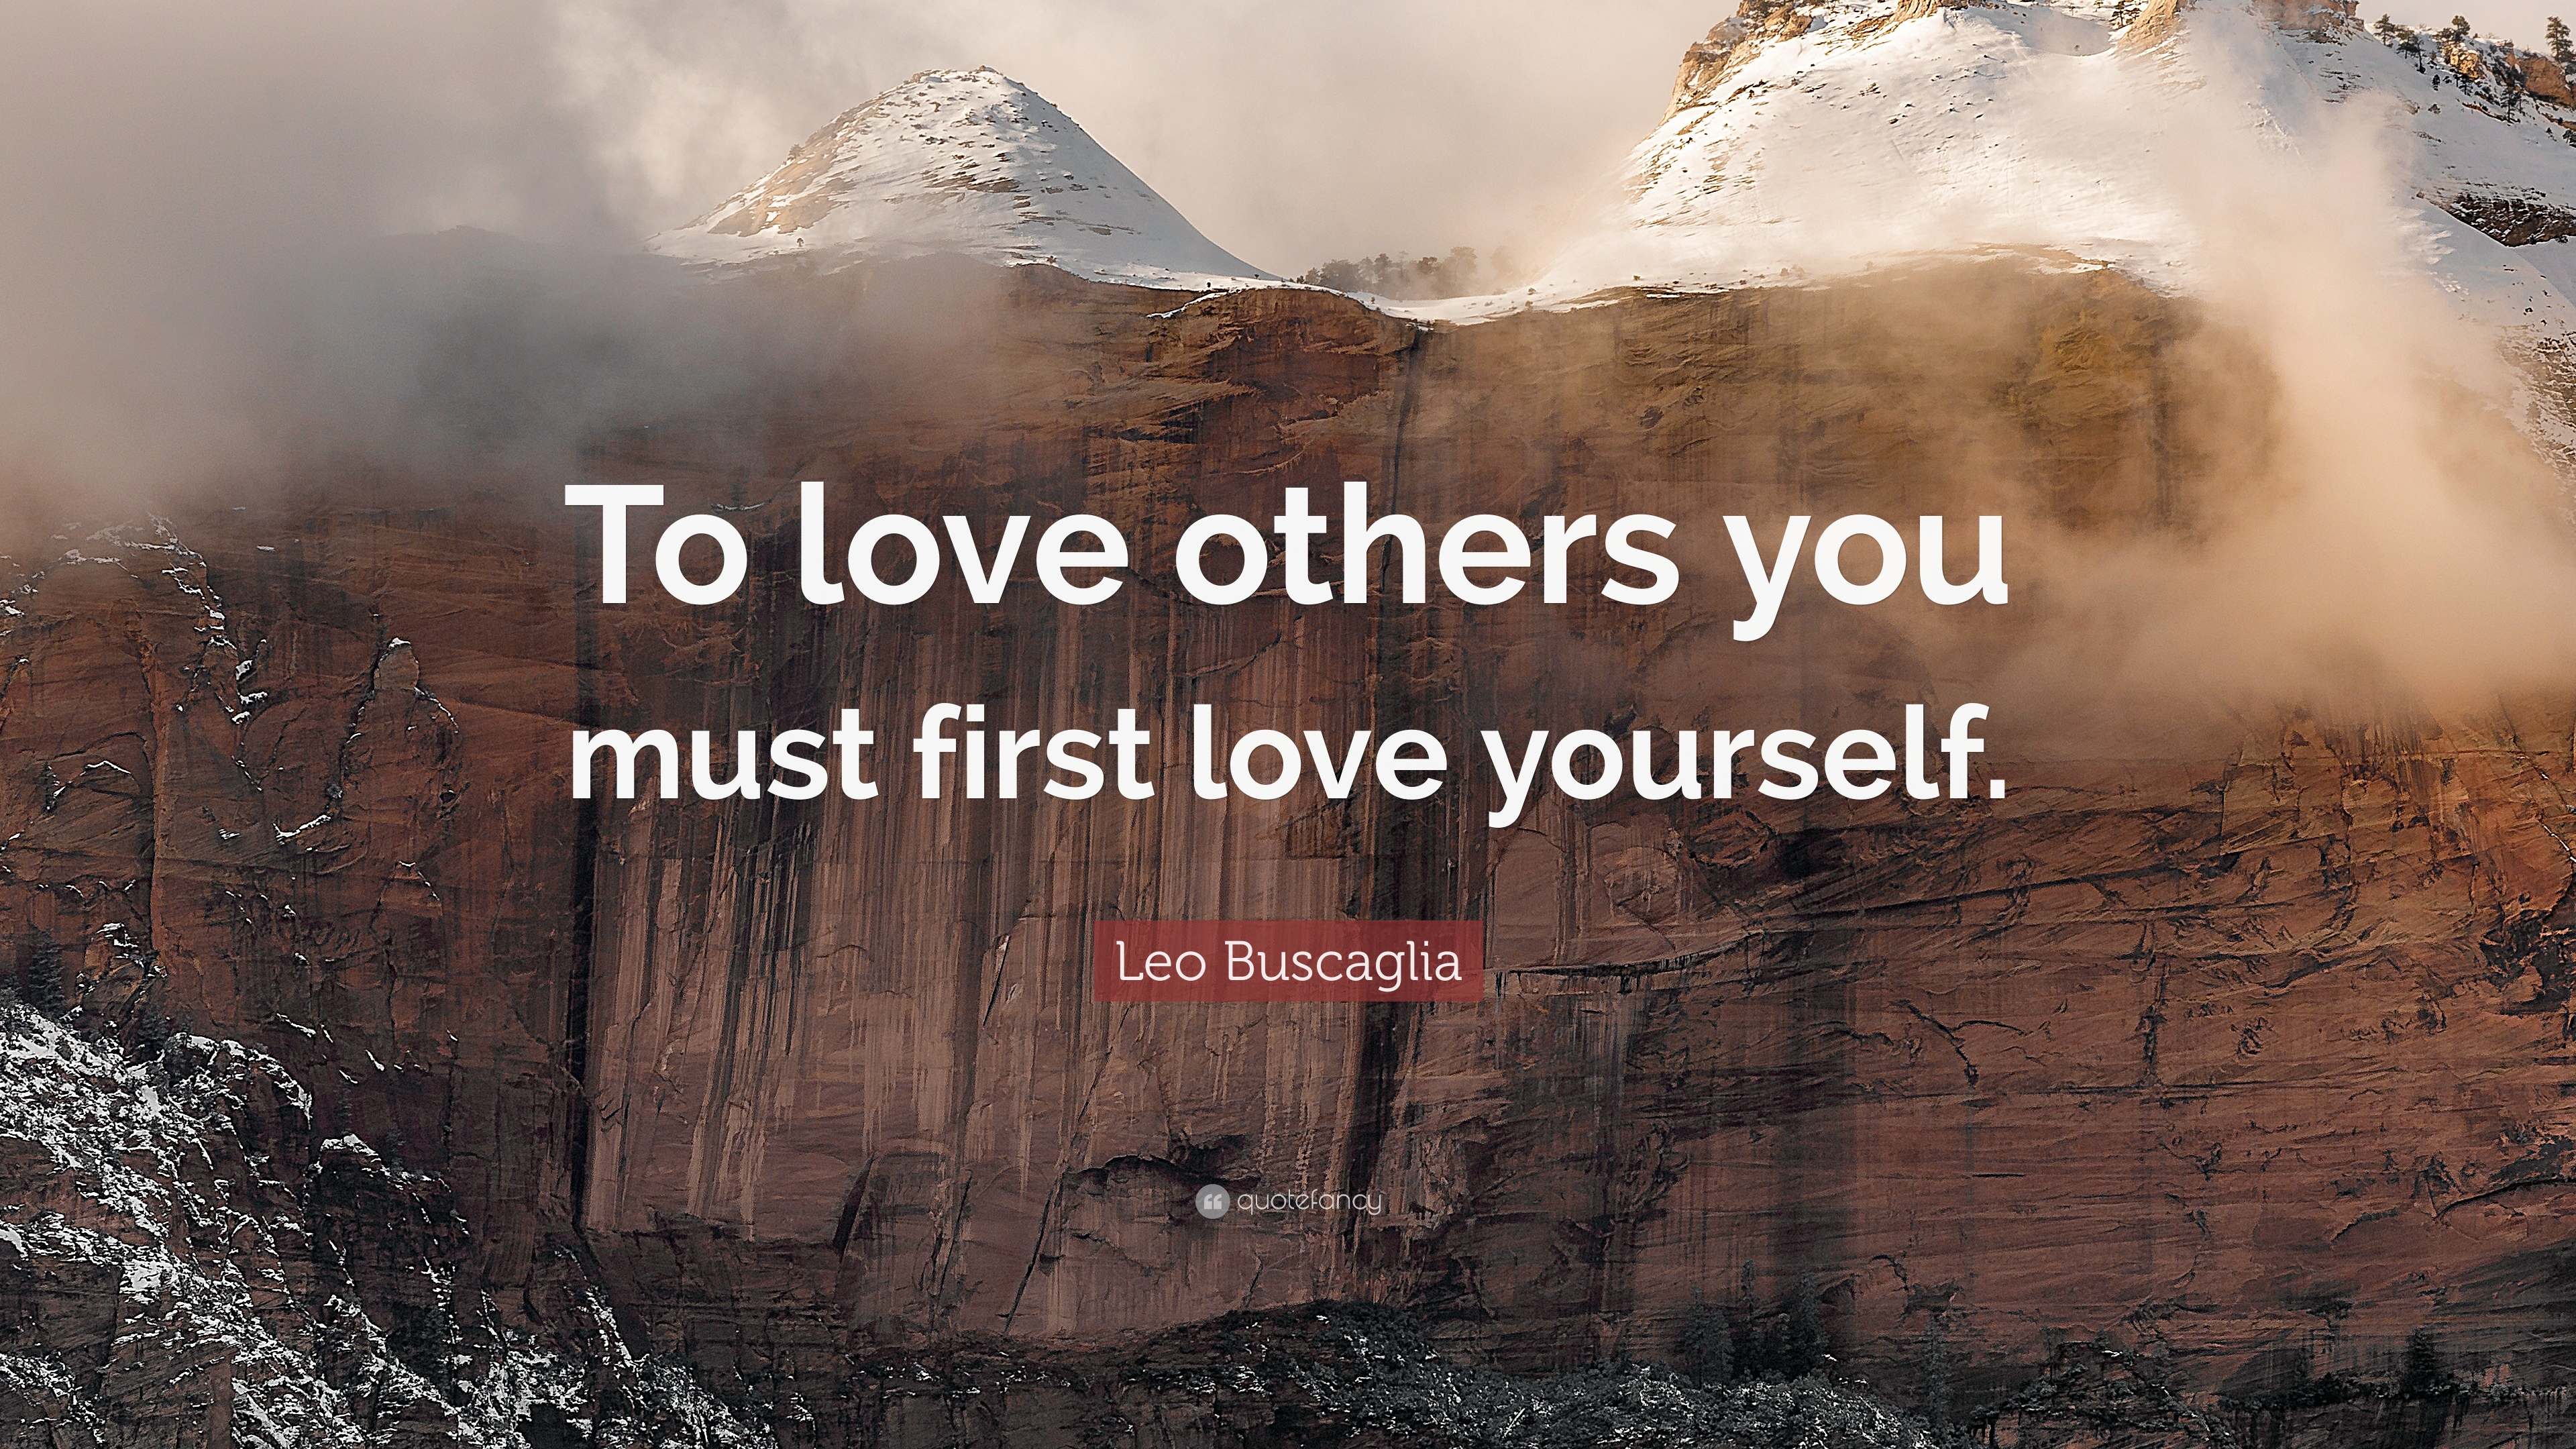 Leo Buscaglia Quote To Love Others You Must First Love Yourself 12 Wallpapers Quotefancy